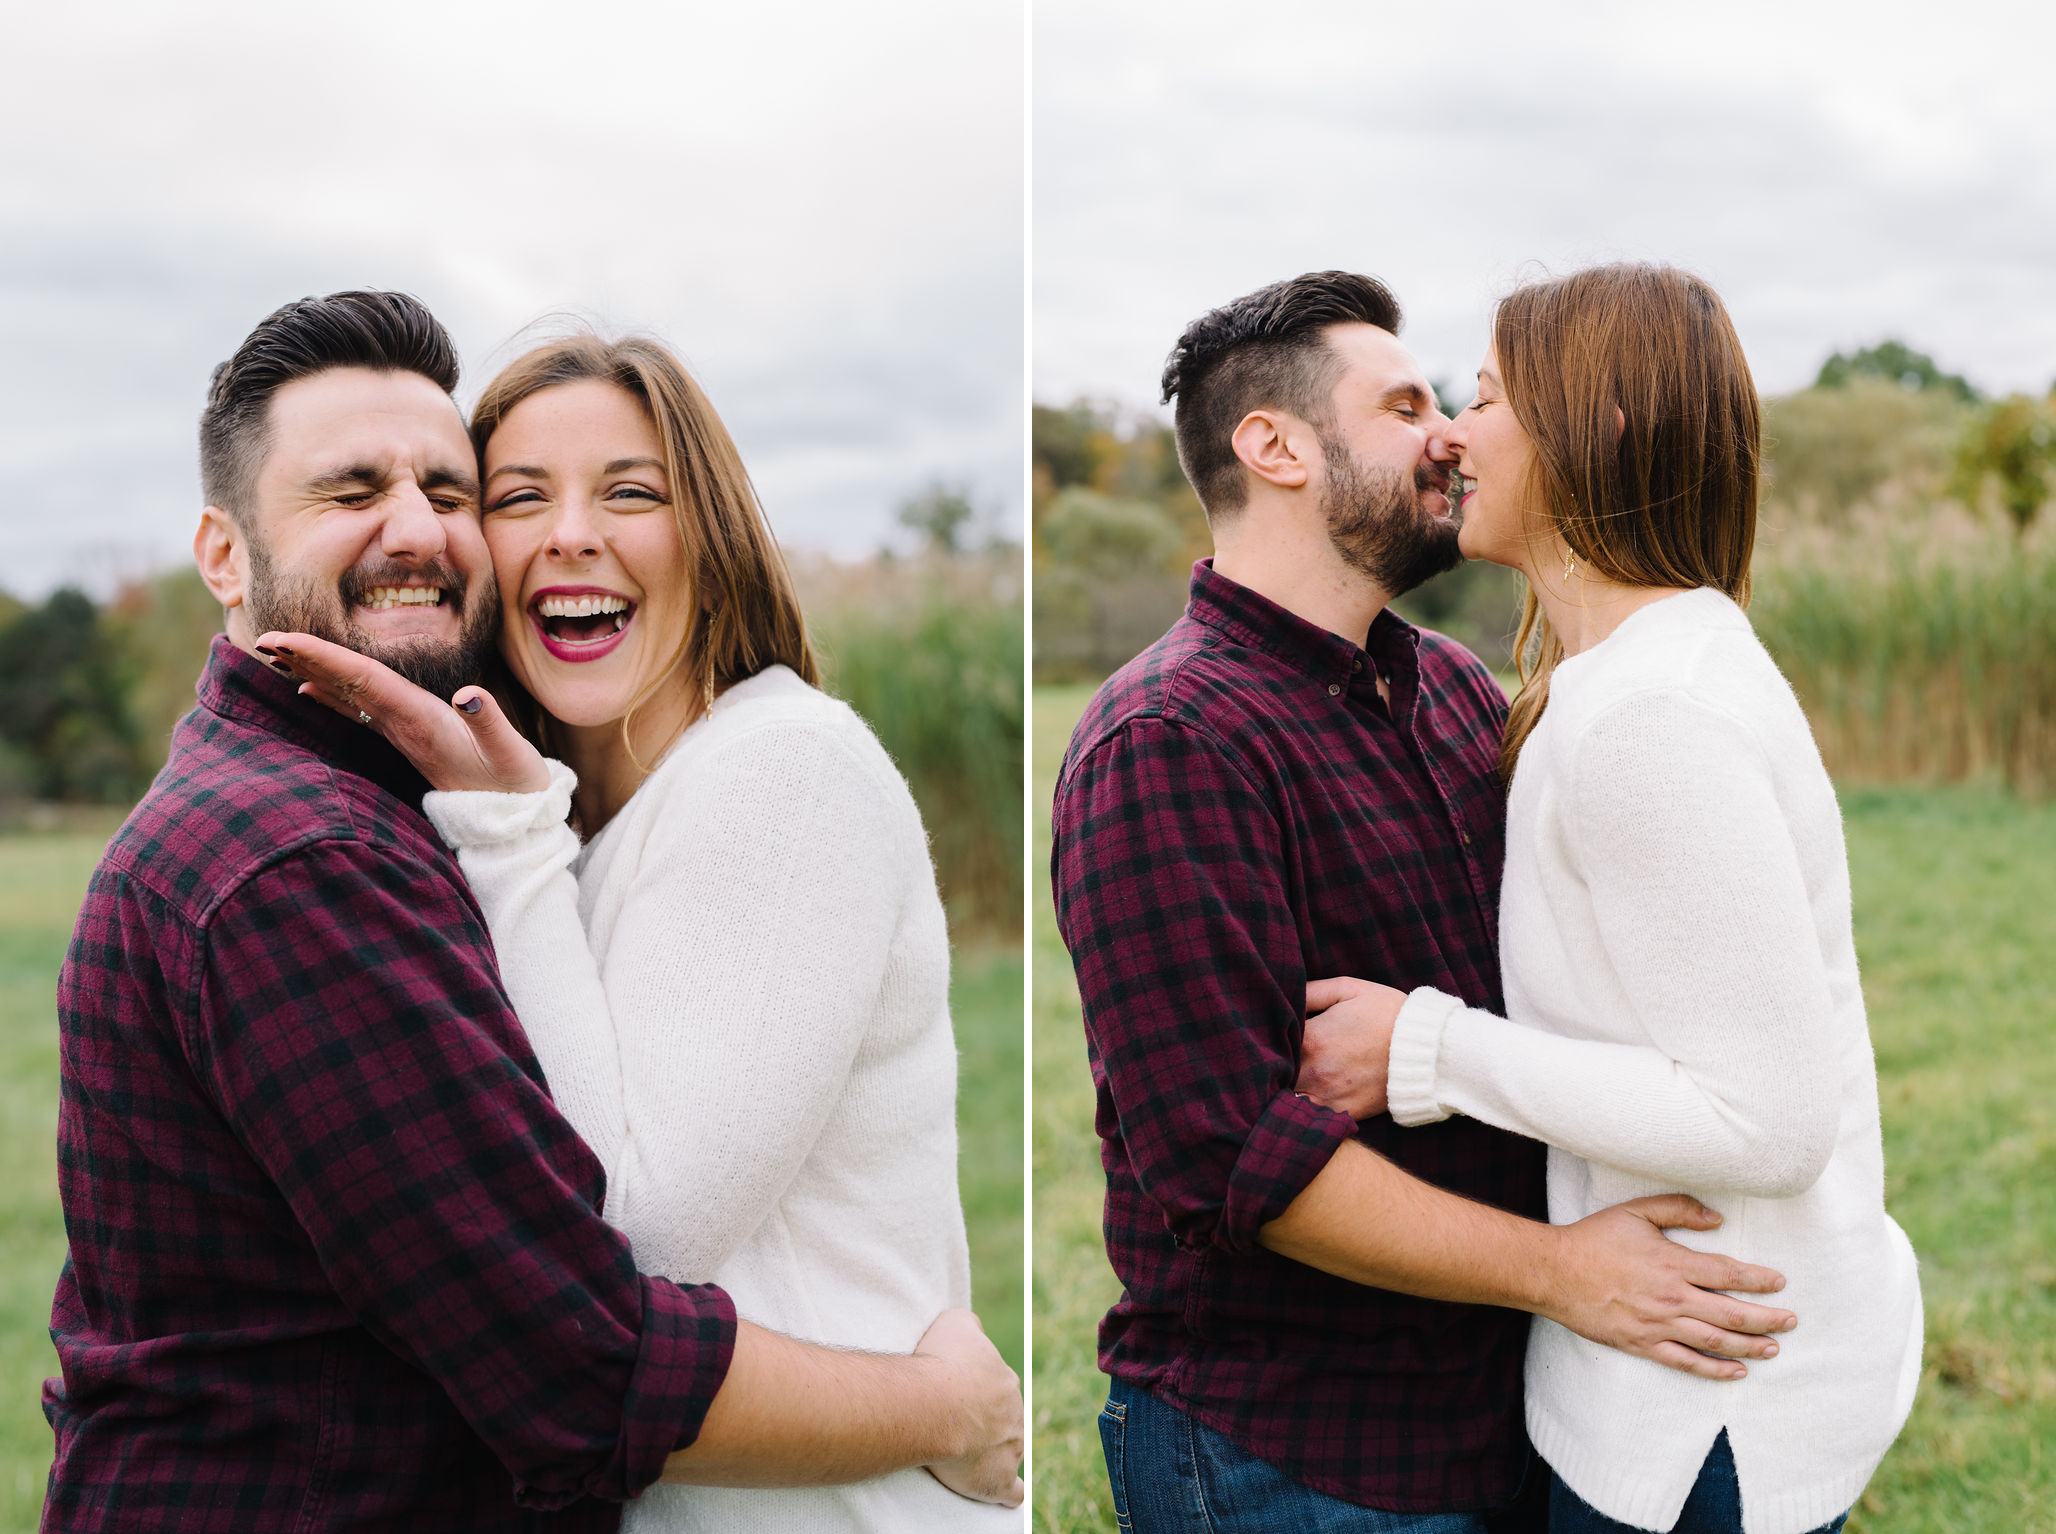 Verona Park Engagement Session- Becky+Mat- Montclair New Jersey- Olivia Christina Photo.1jpg.jpg